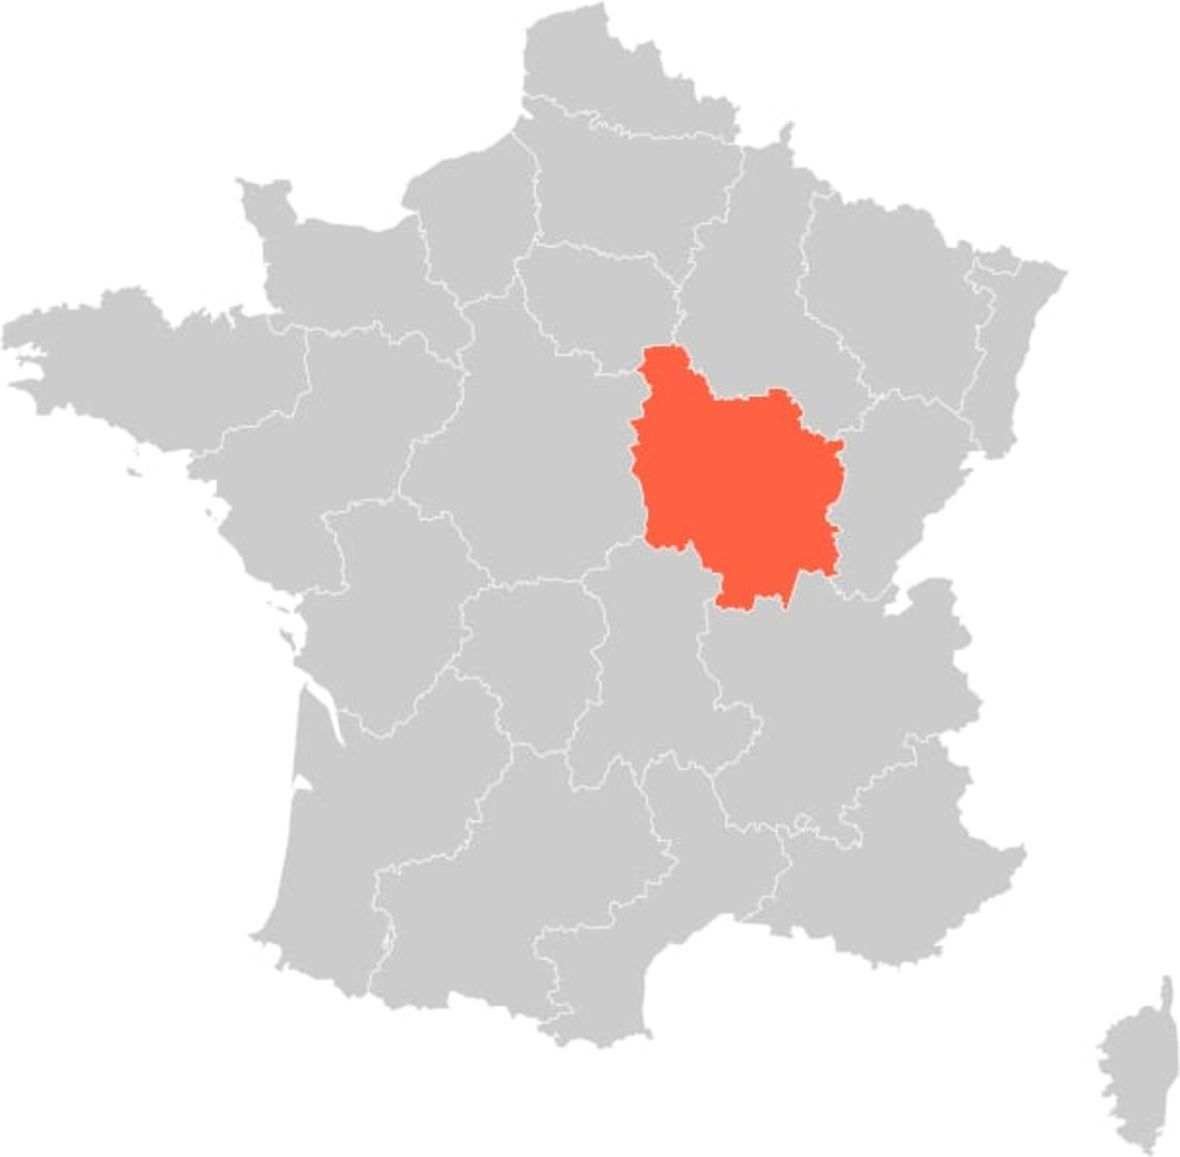 France Burgundy Region Map